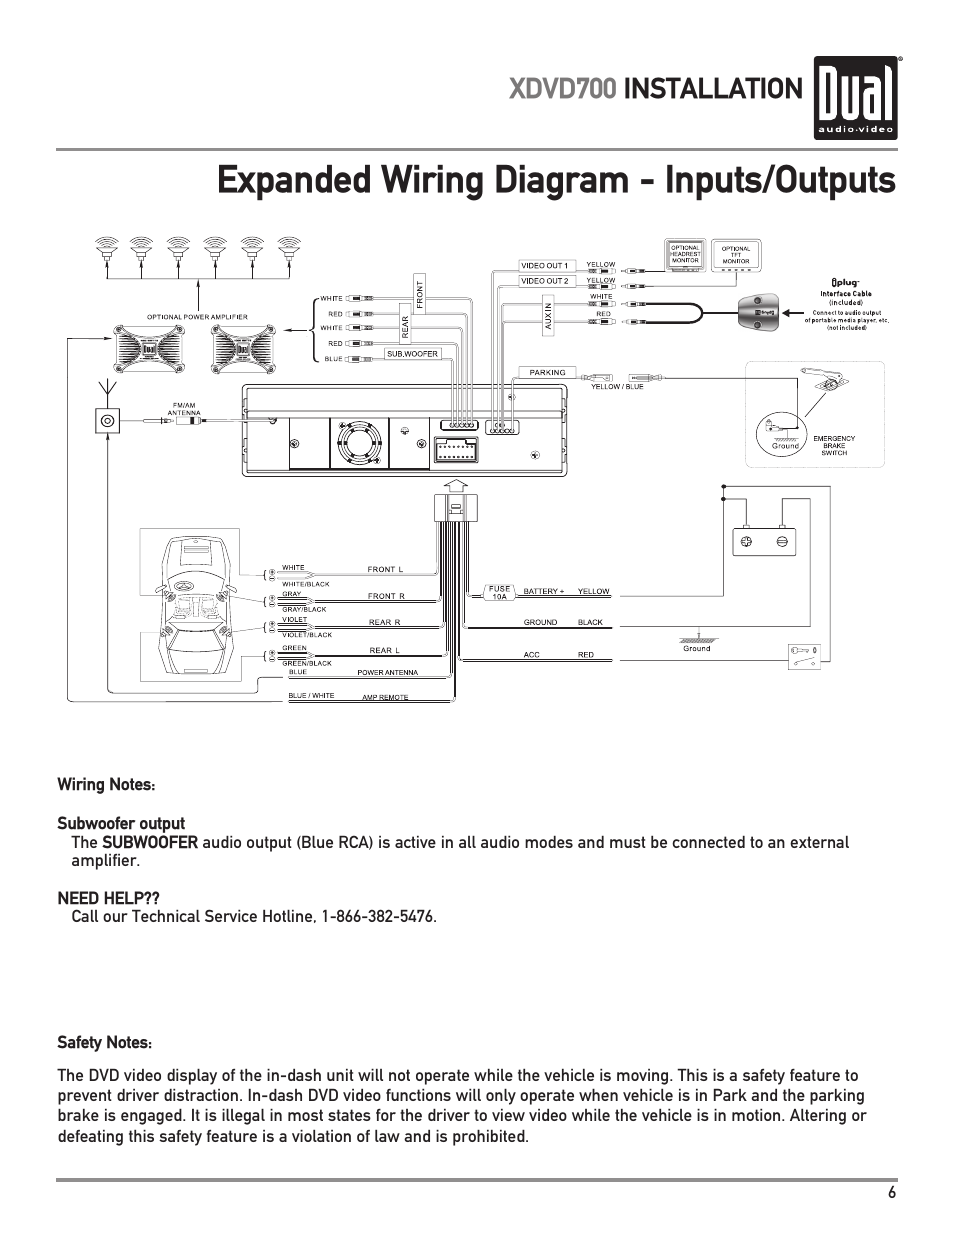 dual xdvd700 page7 expanded wiring diagram inputs outputs, xdvd700 installation dual wiring harness diagram at soozxer.org